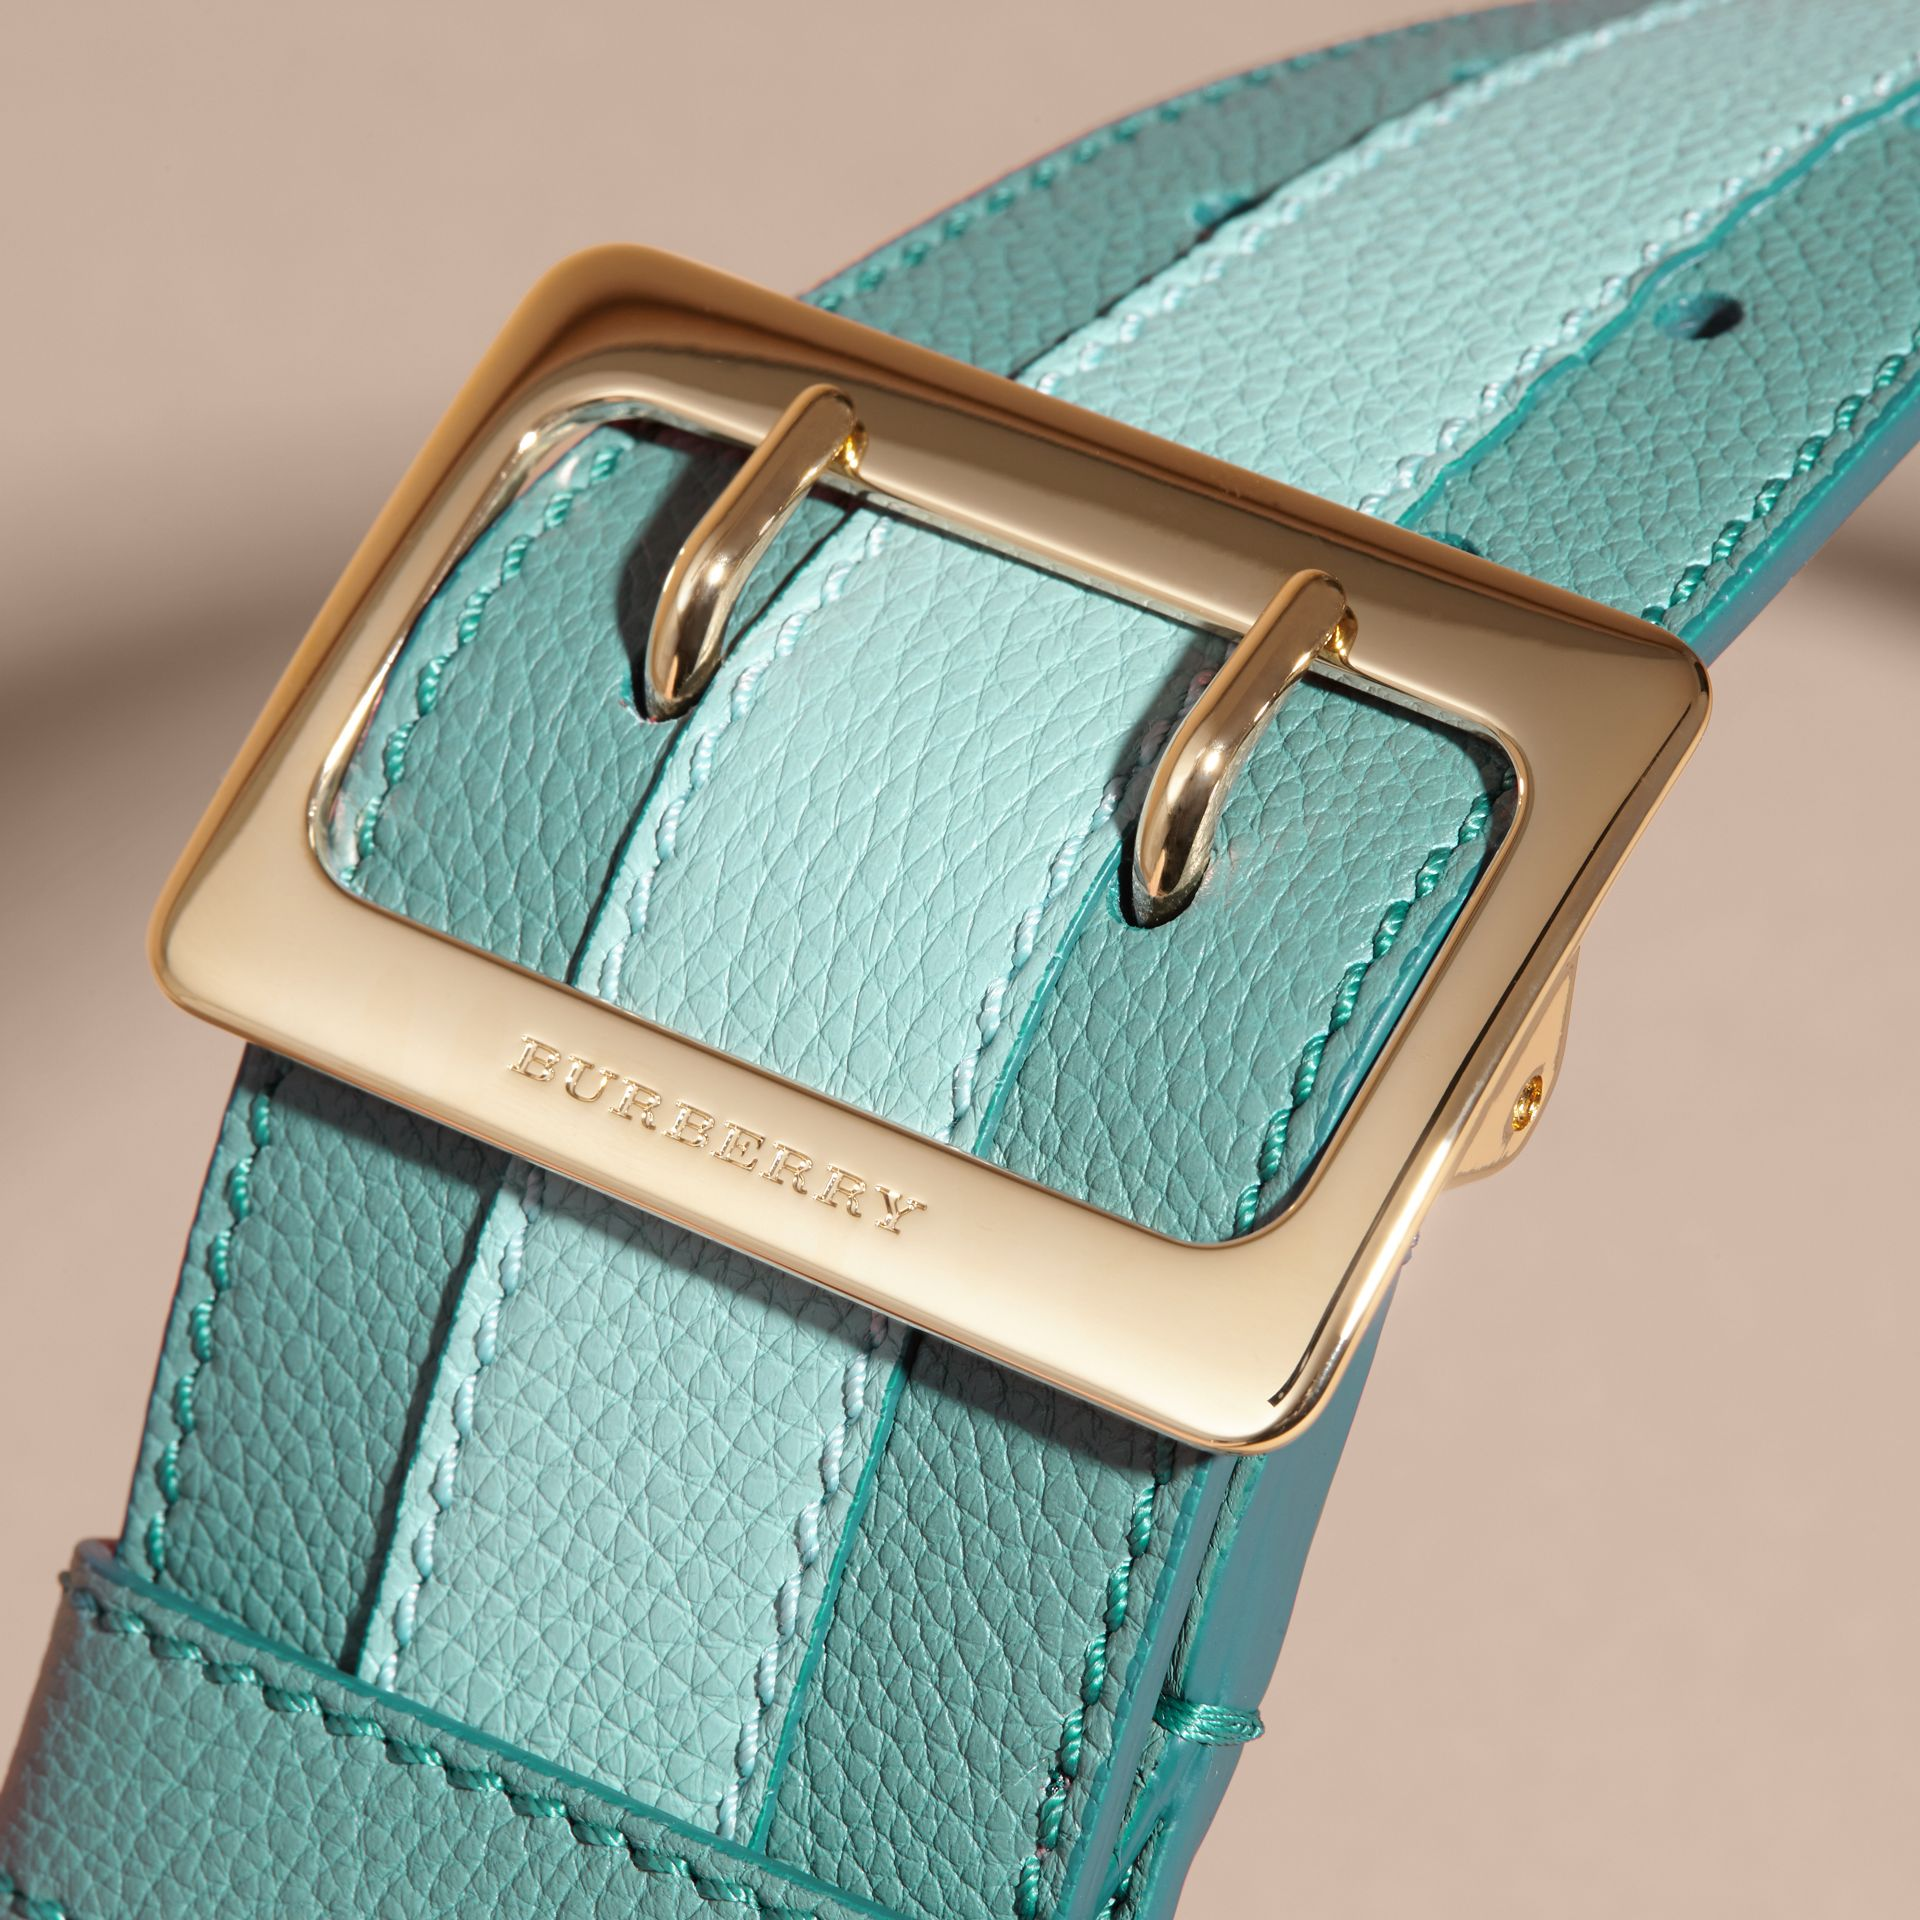 Celadon blue Appliquéd Textured Suede and Leather Belt Celadon Blue - gallery image 2